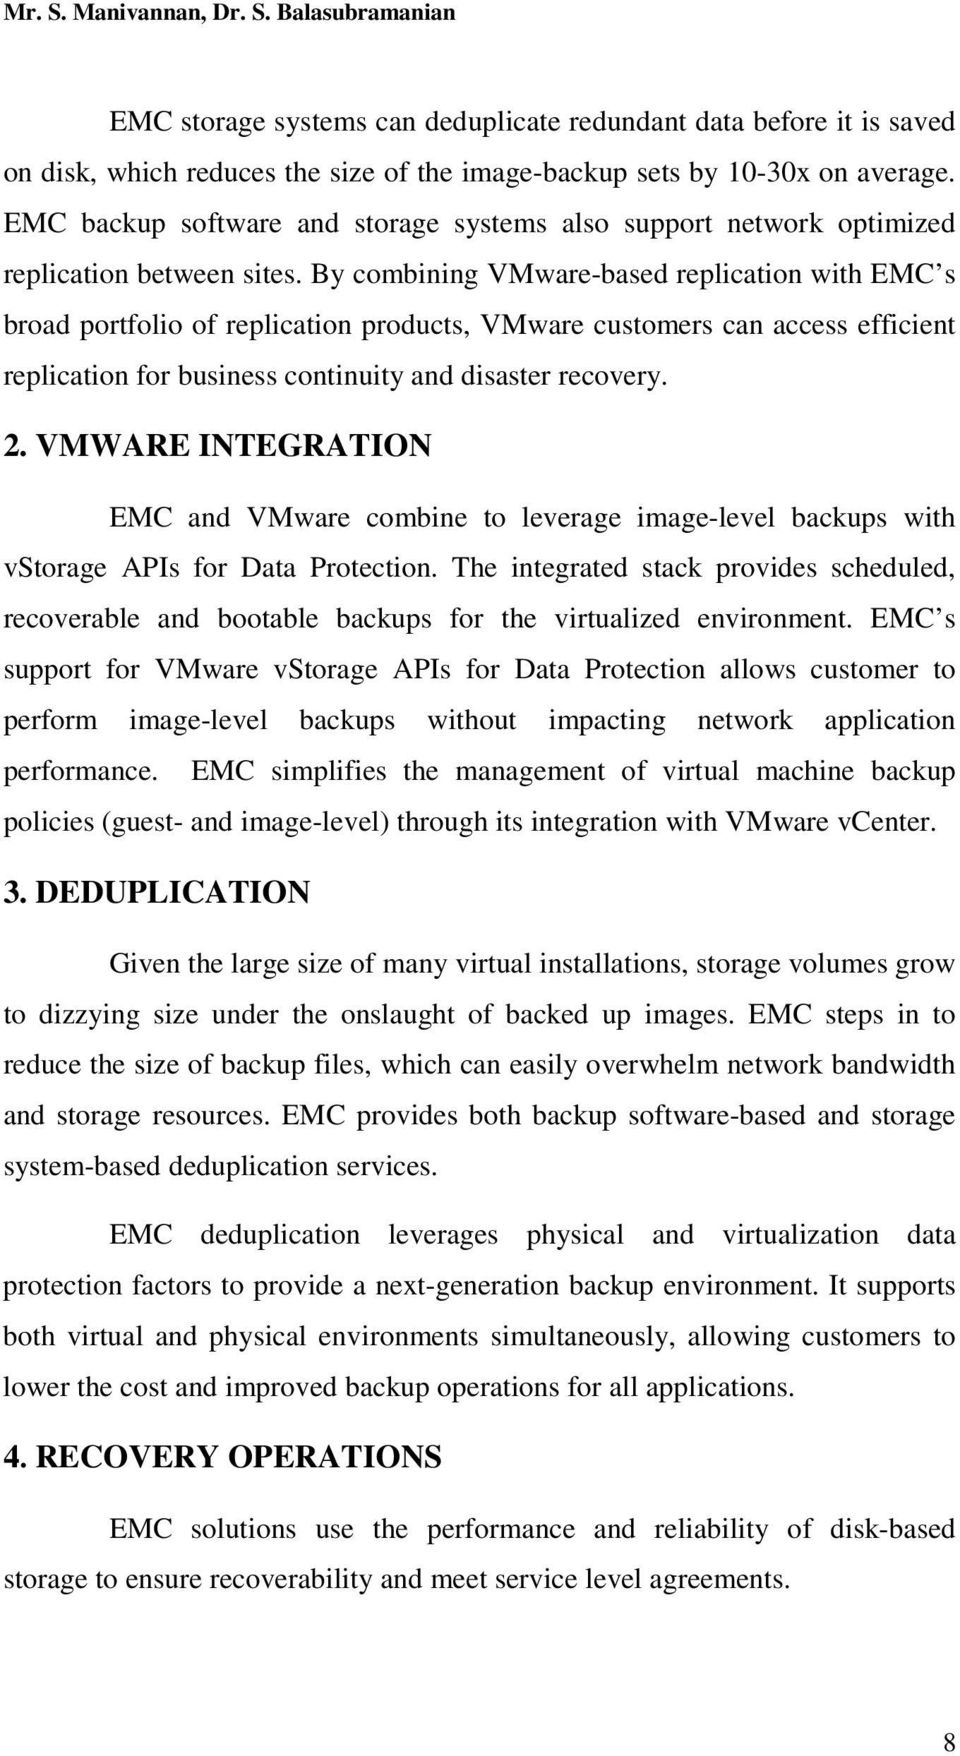 By combining VMware-based replication with EMC s broad portfolio of replication products, VMware customers can access efficient replication for business continuity and disaster recovery. 2.